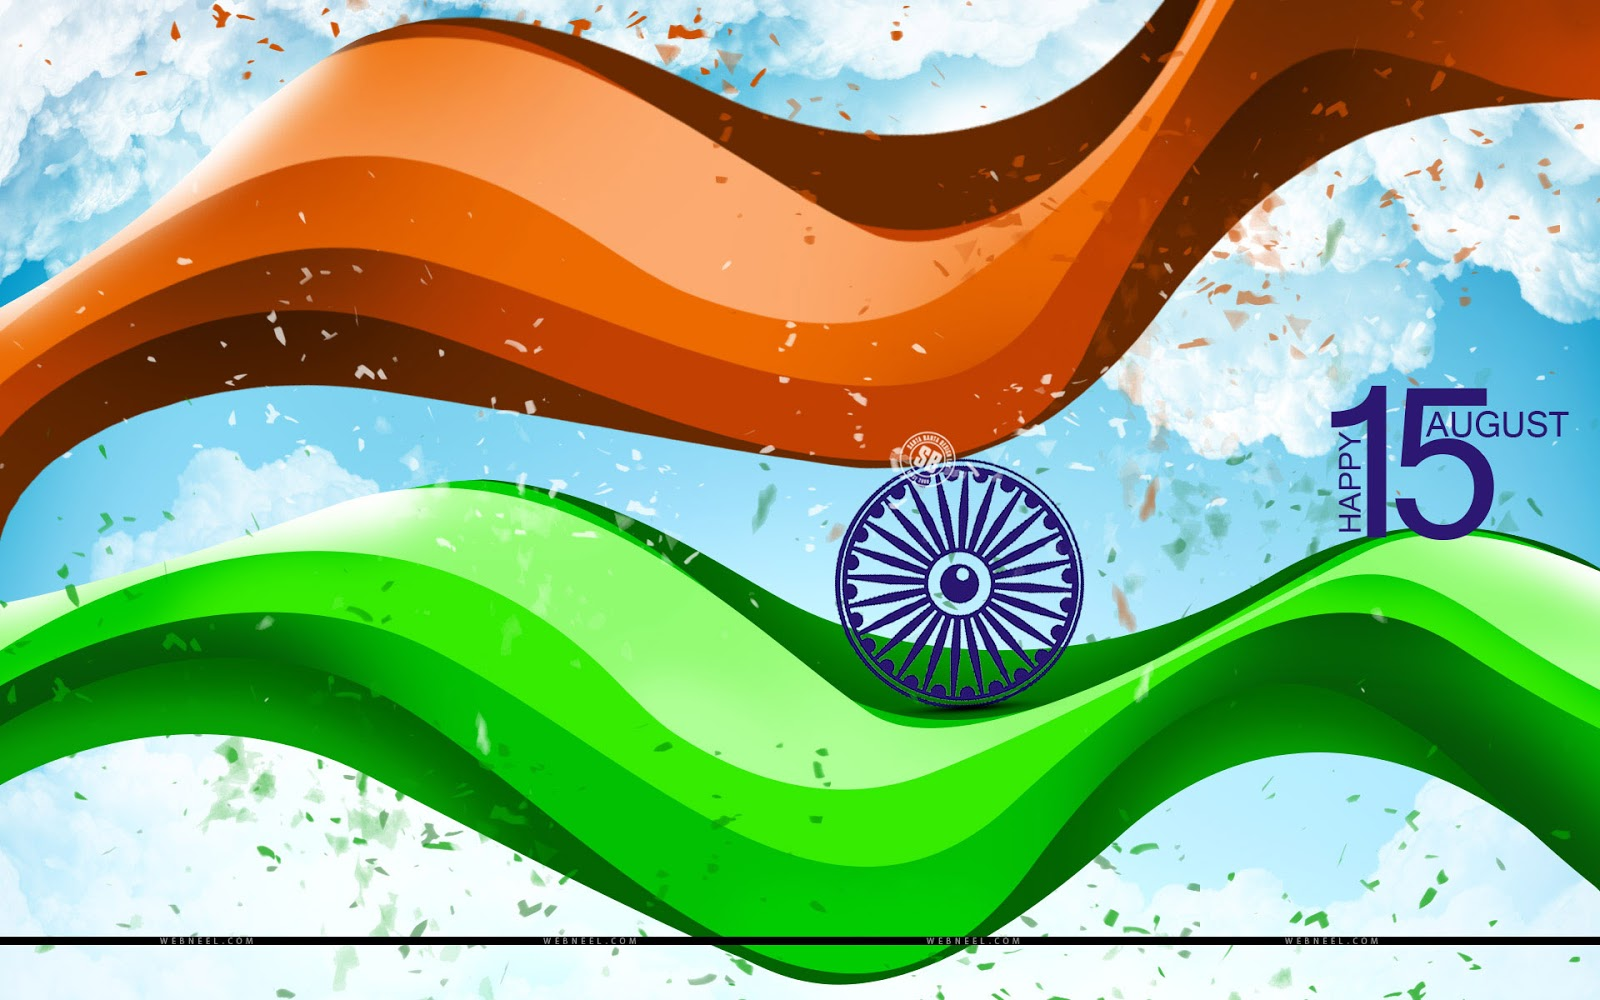 th independence day of special hd images and   independence day hd